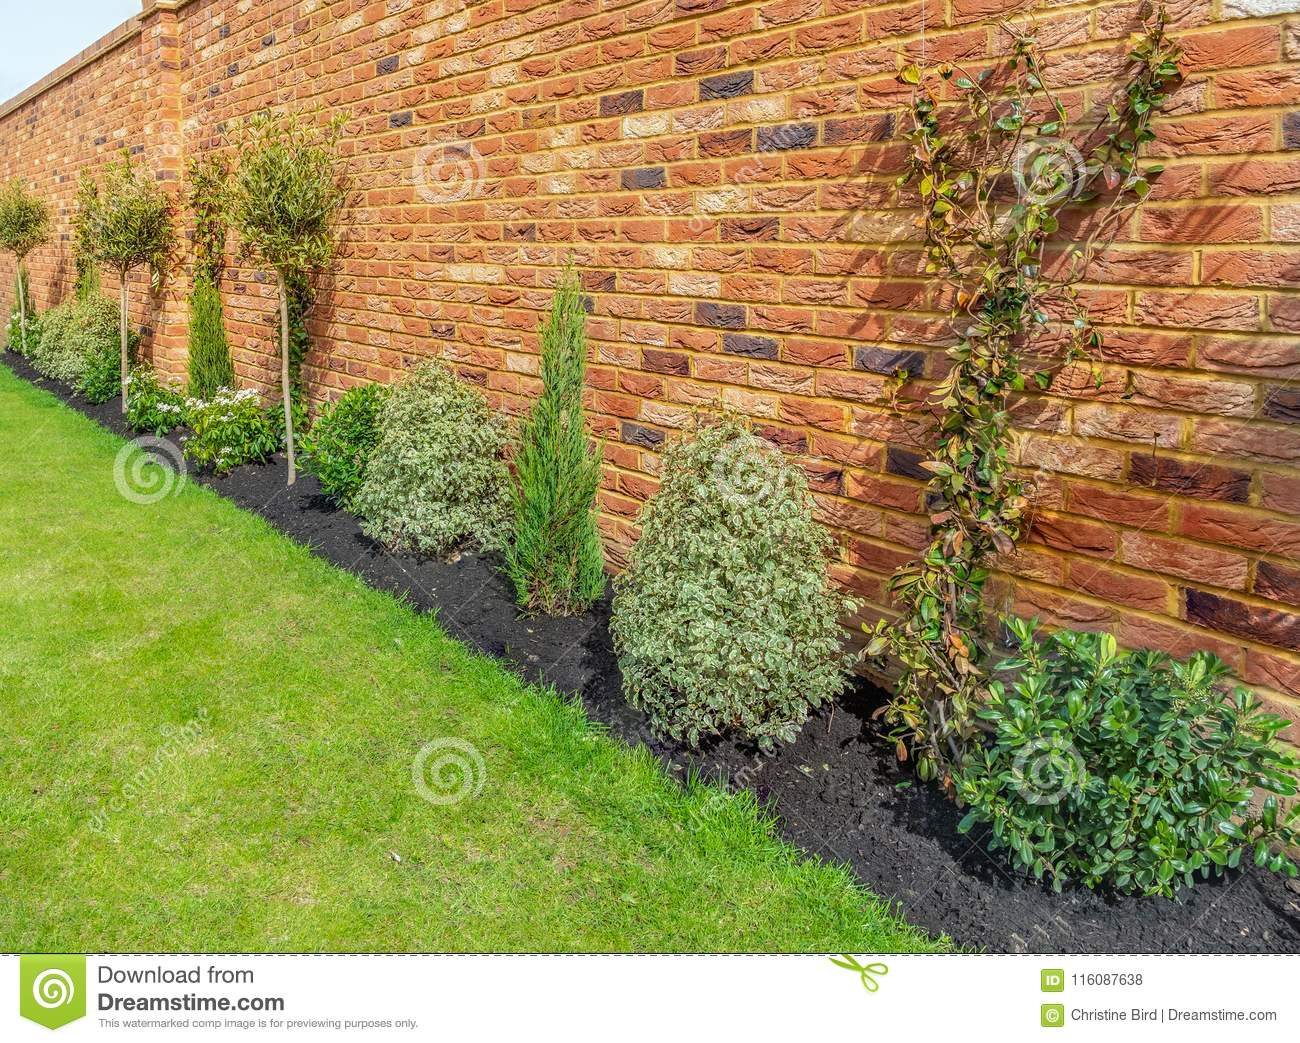 Newly Planted Shrubs And Plants Against A Red Brick Wall Stock